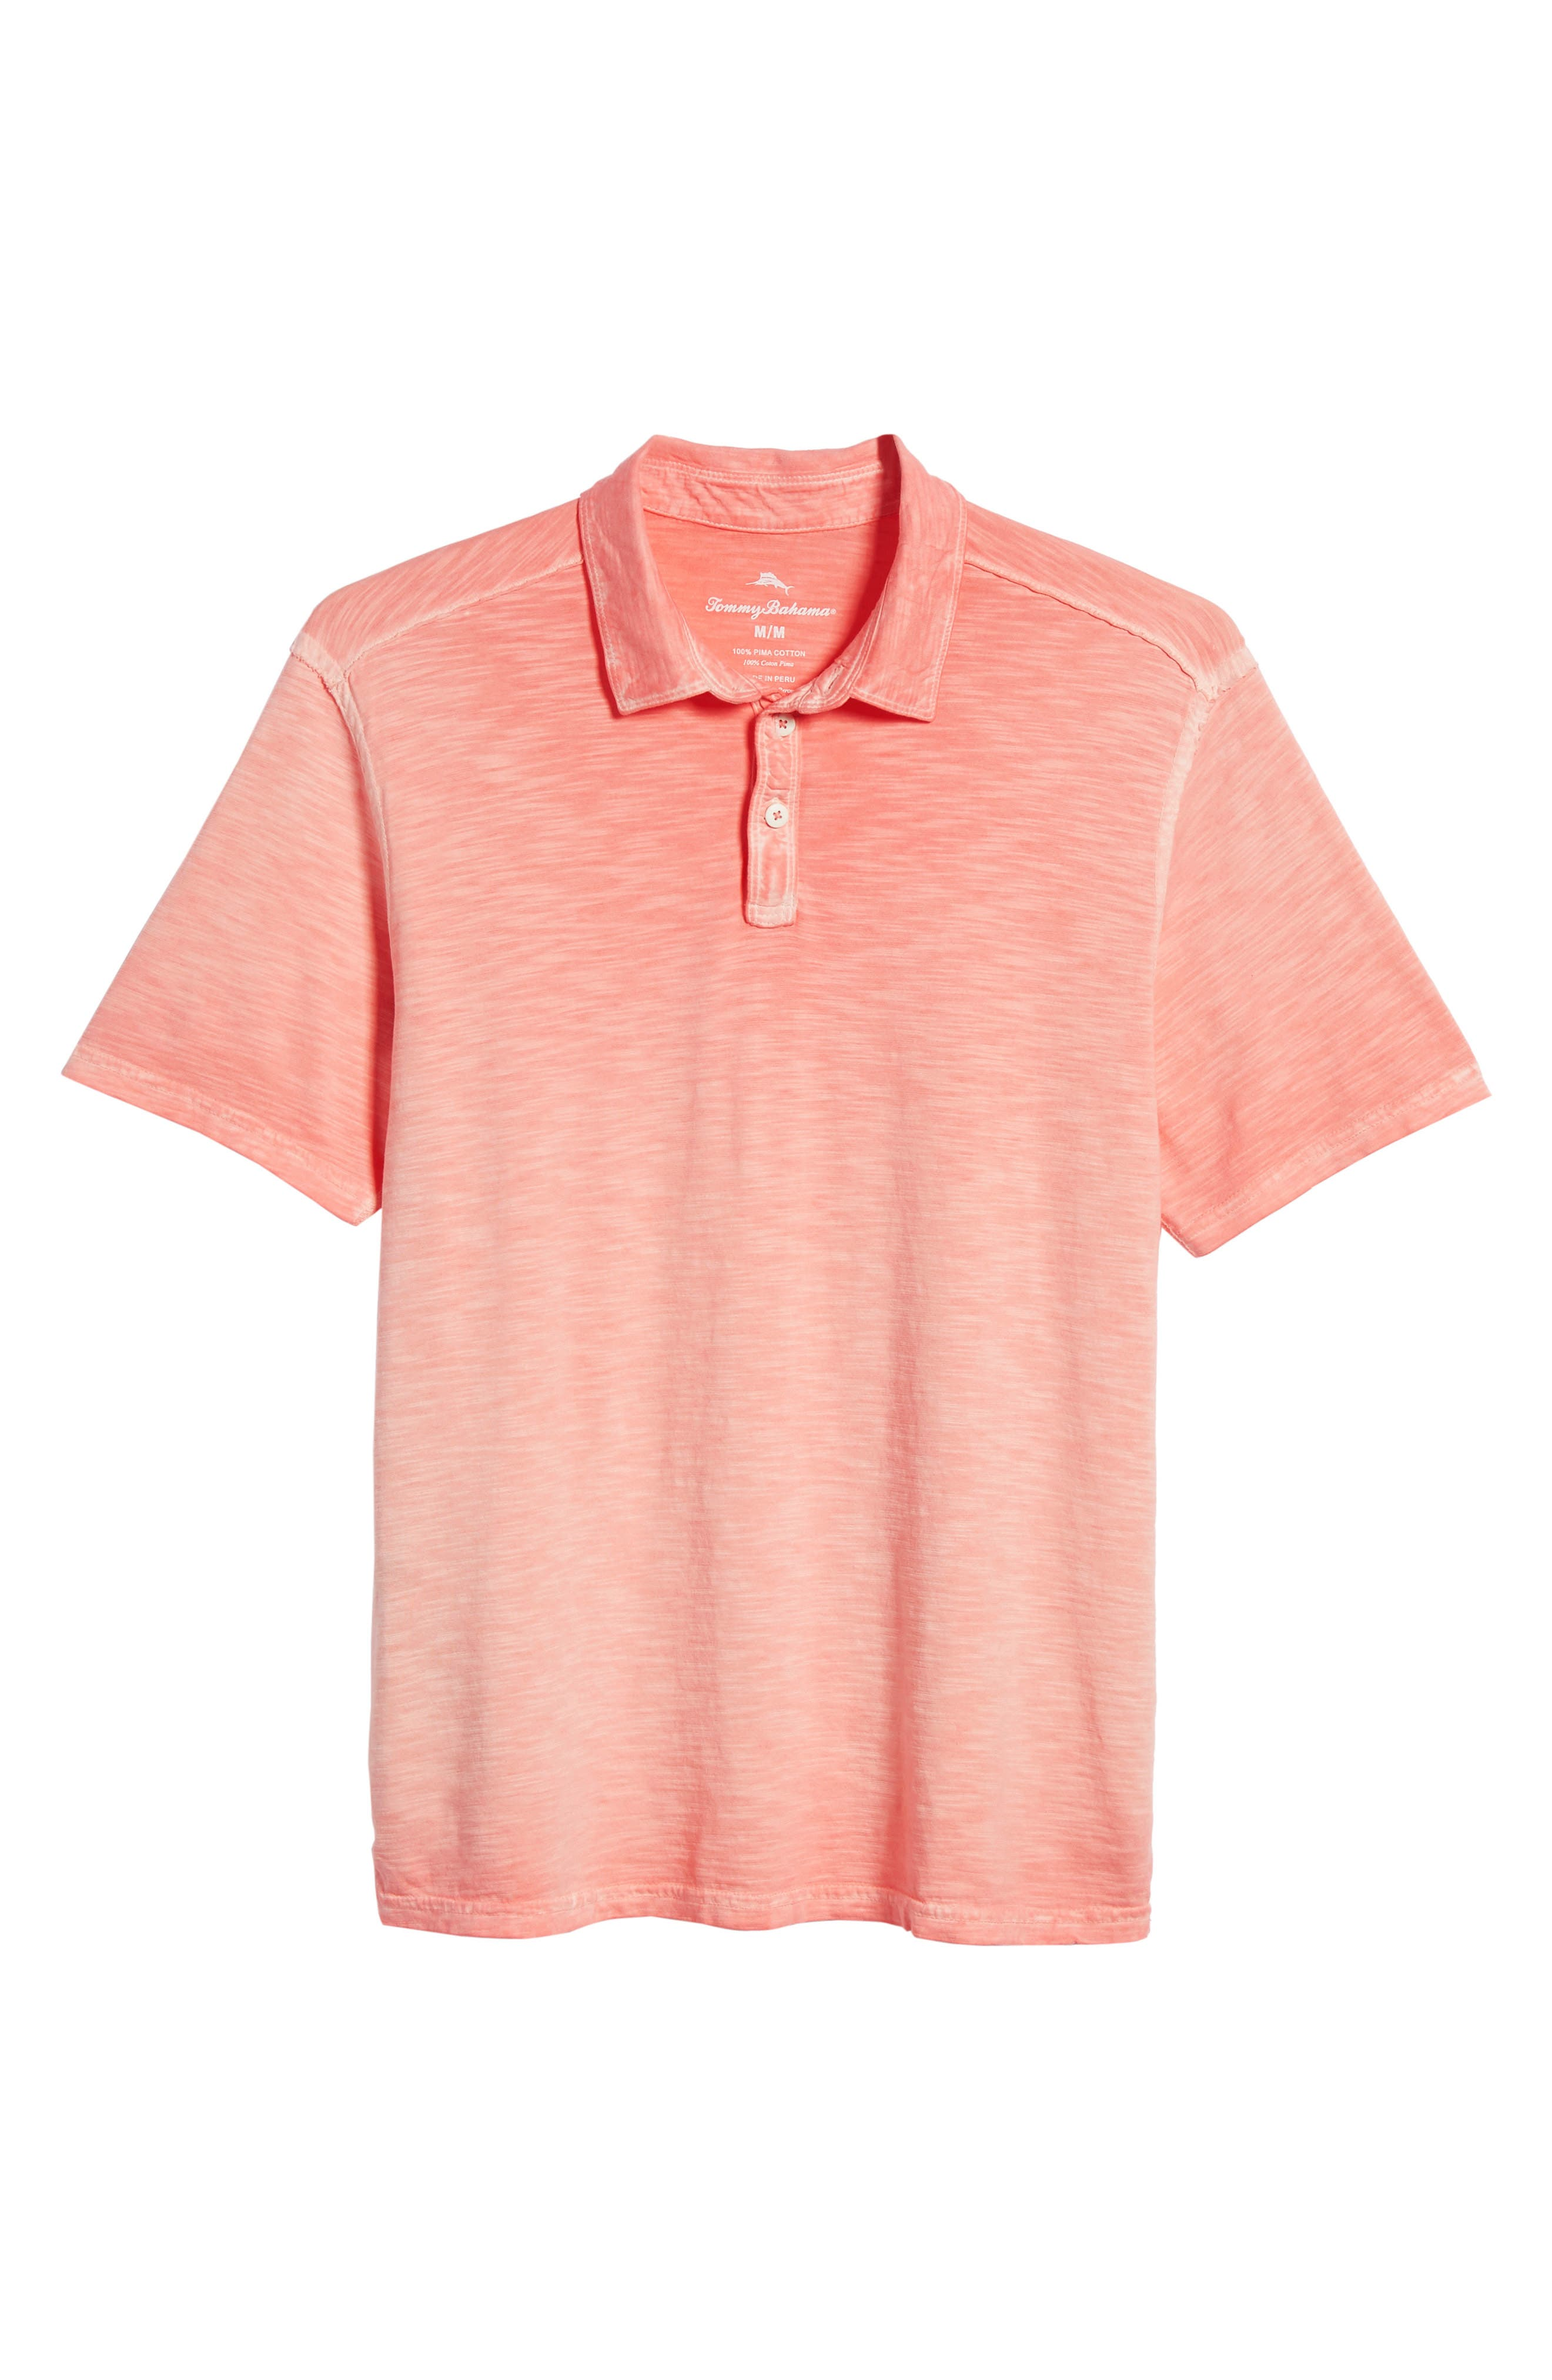 Suncoast Shores Slub Jersey Polo,                             Alternate thumbnail 6, color,                             Electric Coral